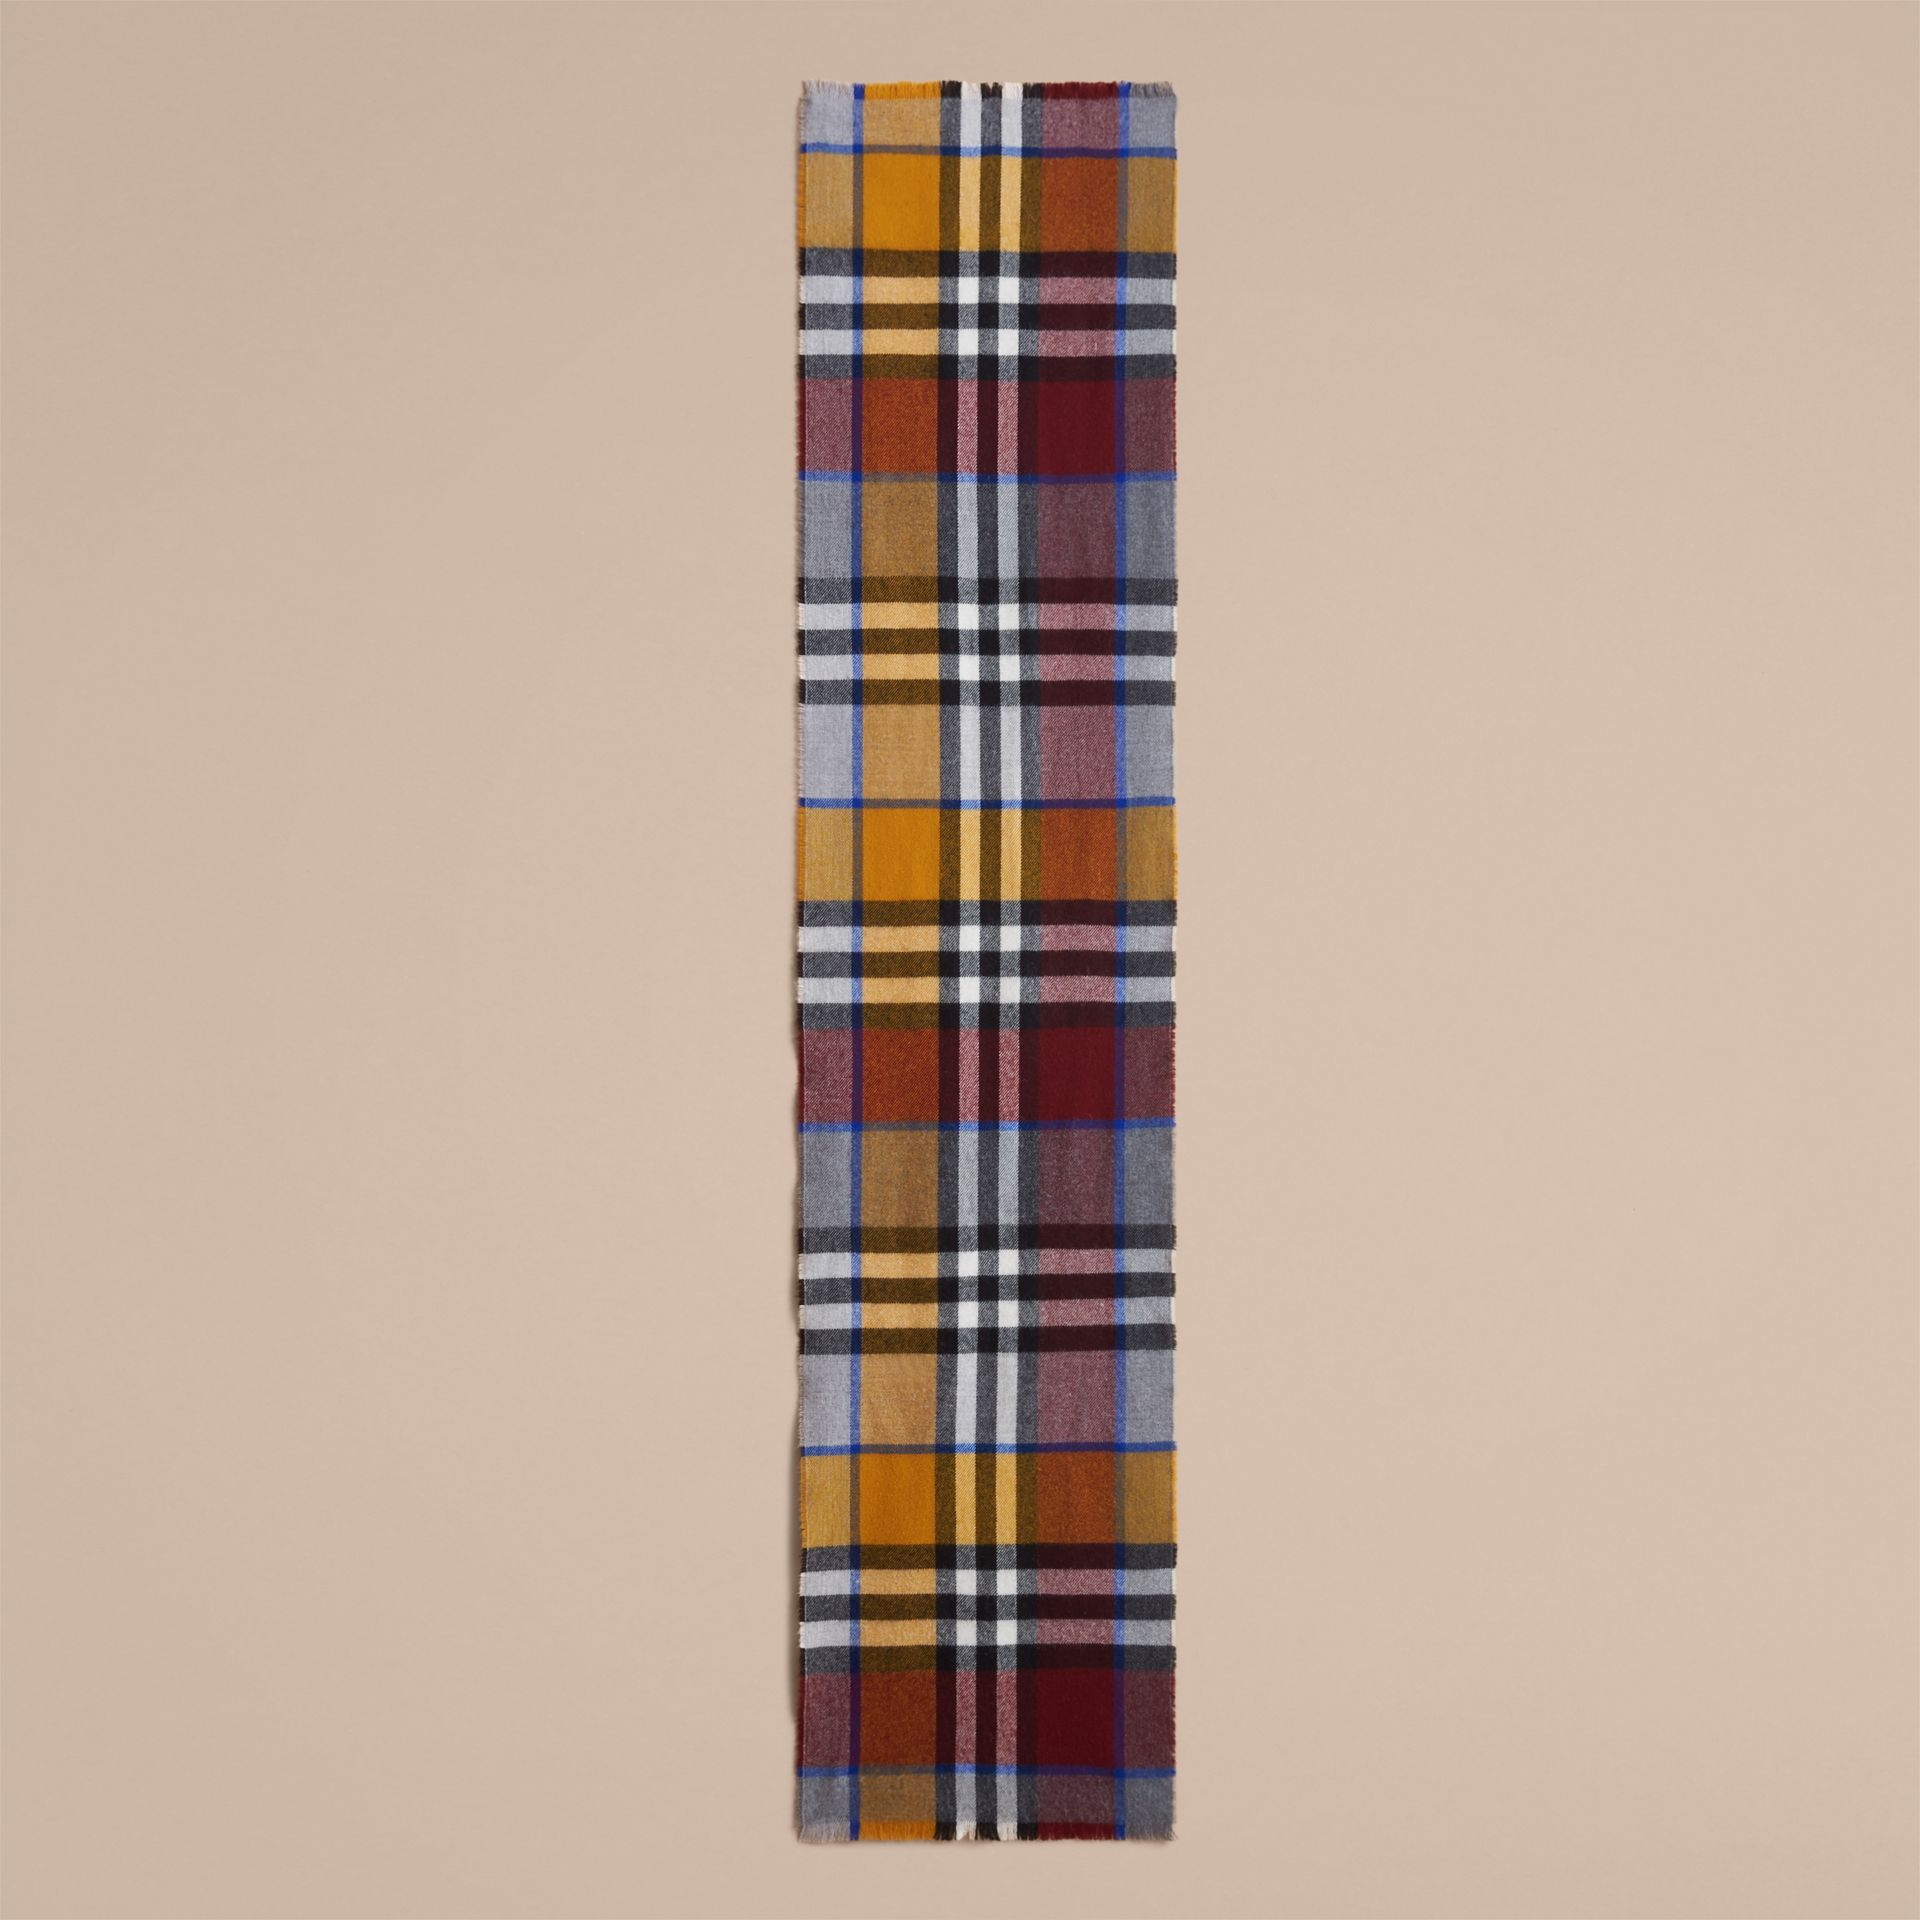 Overdyed Exploded Check Merino Wool Scarf in Burgndy/ochre Yellow | Burberry United Kingdom - gallery image 3